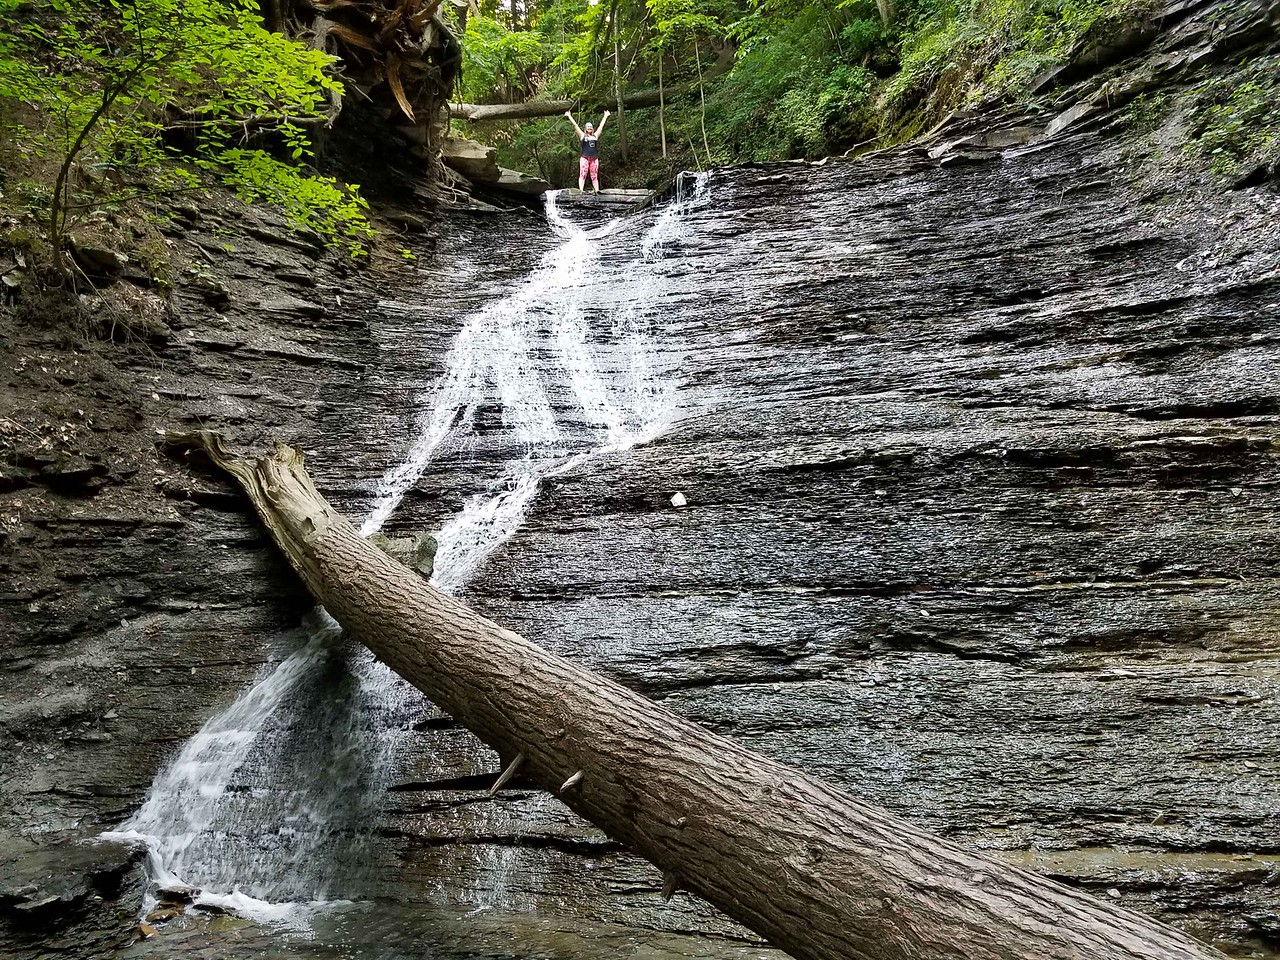 Buttermilk Falls in Cuyahoga Valley National Park